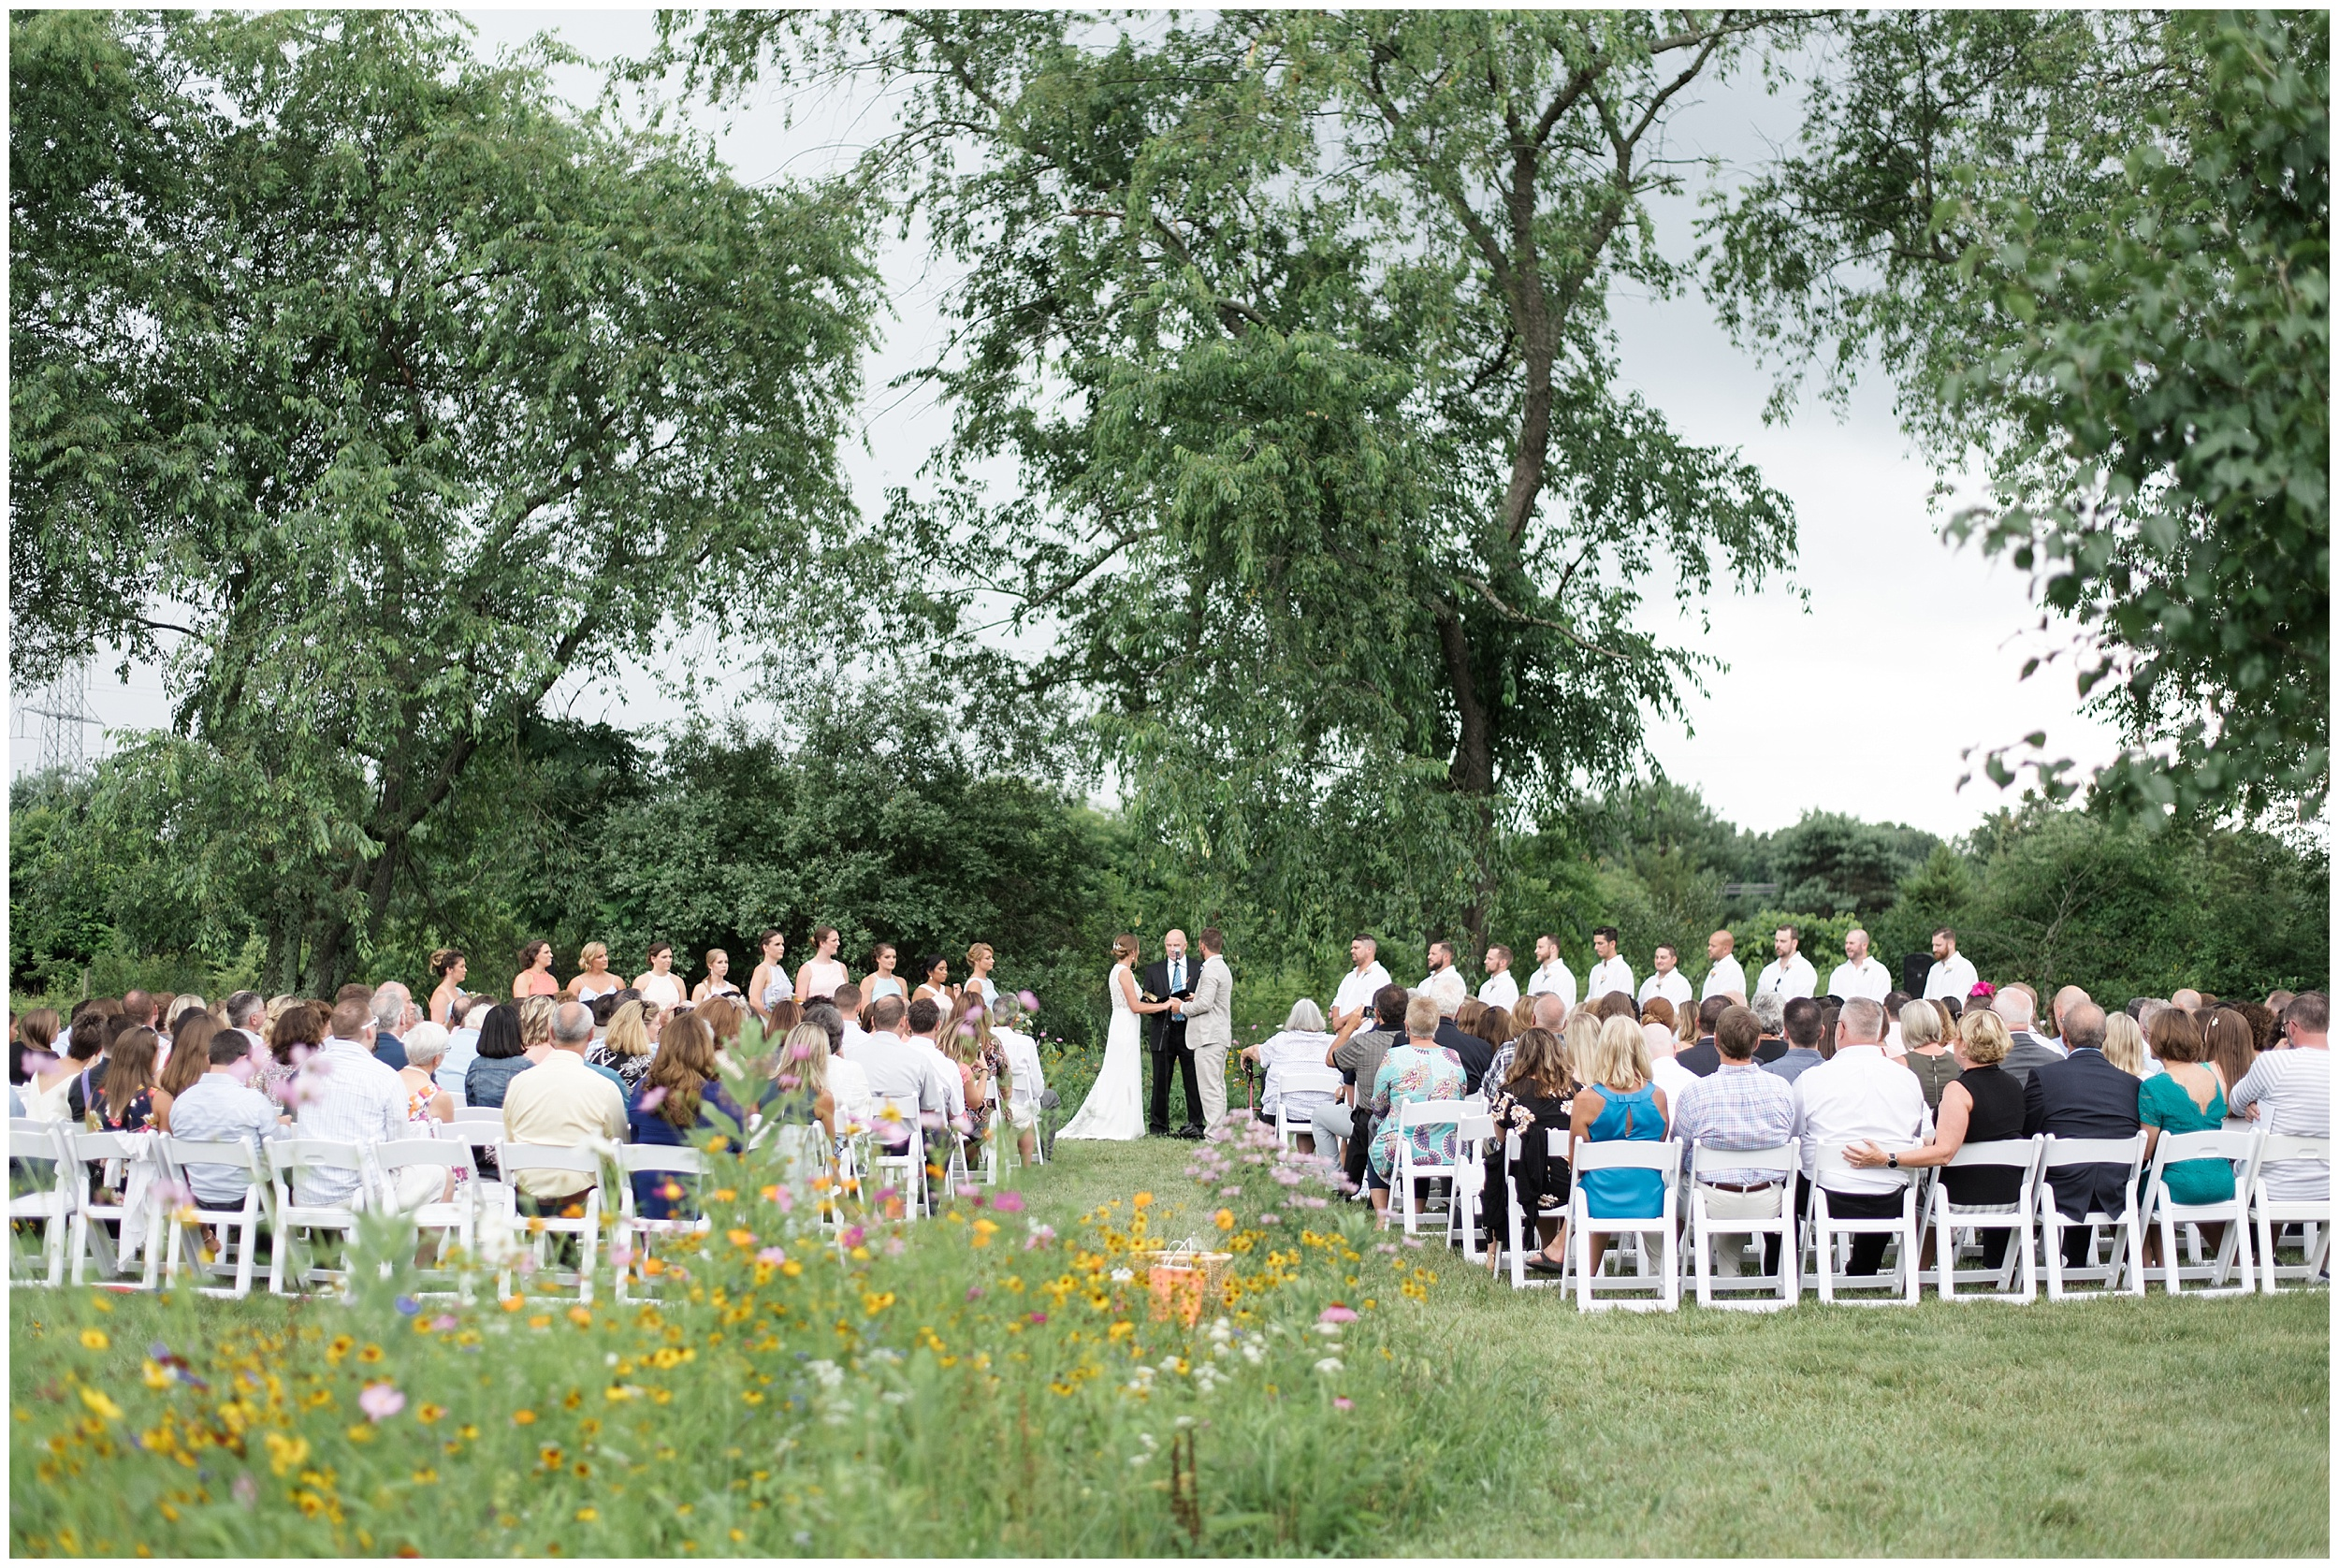 Whimsical-Ethereal-July-Kalamazoo-Wedding-Bright-Airy-Documentary-Milwaukee-Photographer_0034.jpg